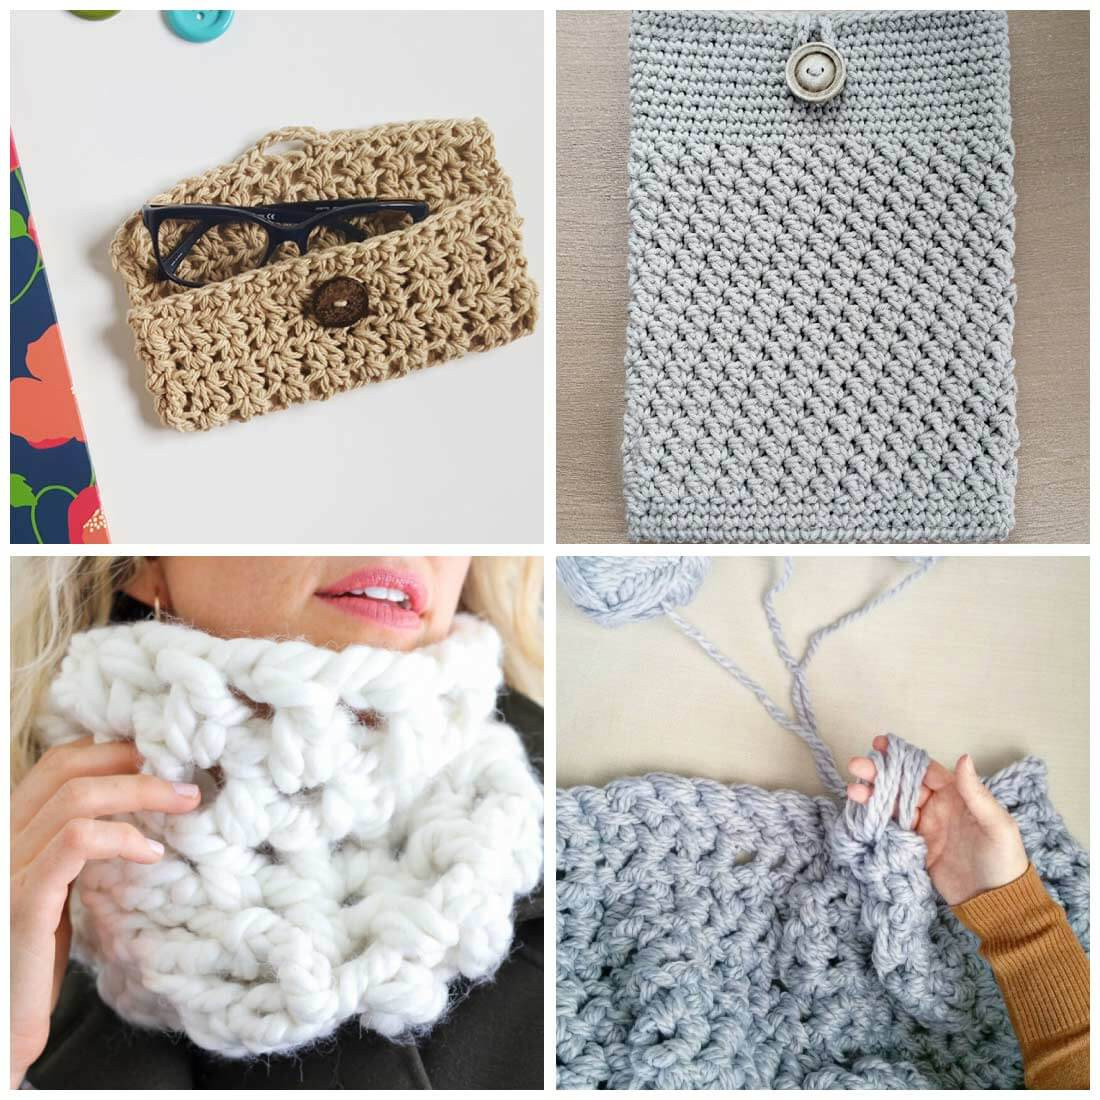 Quick and Easy Crochet Patterns Elegant Easy Crochet Patterns Free Crochet Patterns On Daisy Of Fresh 47 Pictures Quick and Easy Crochet Patterns